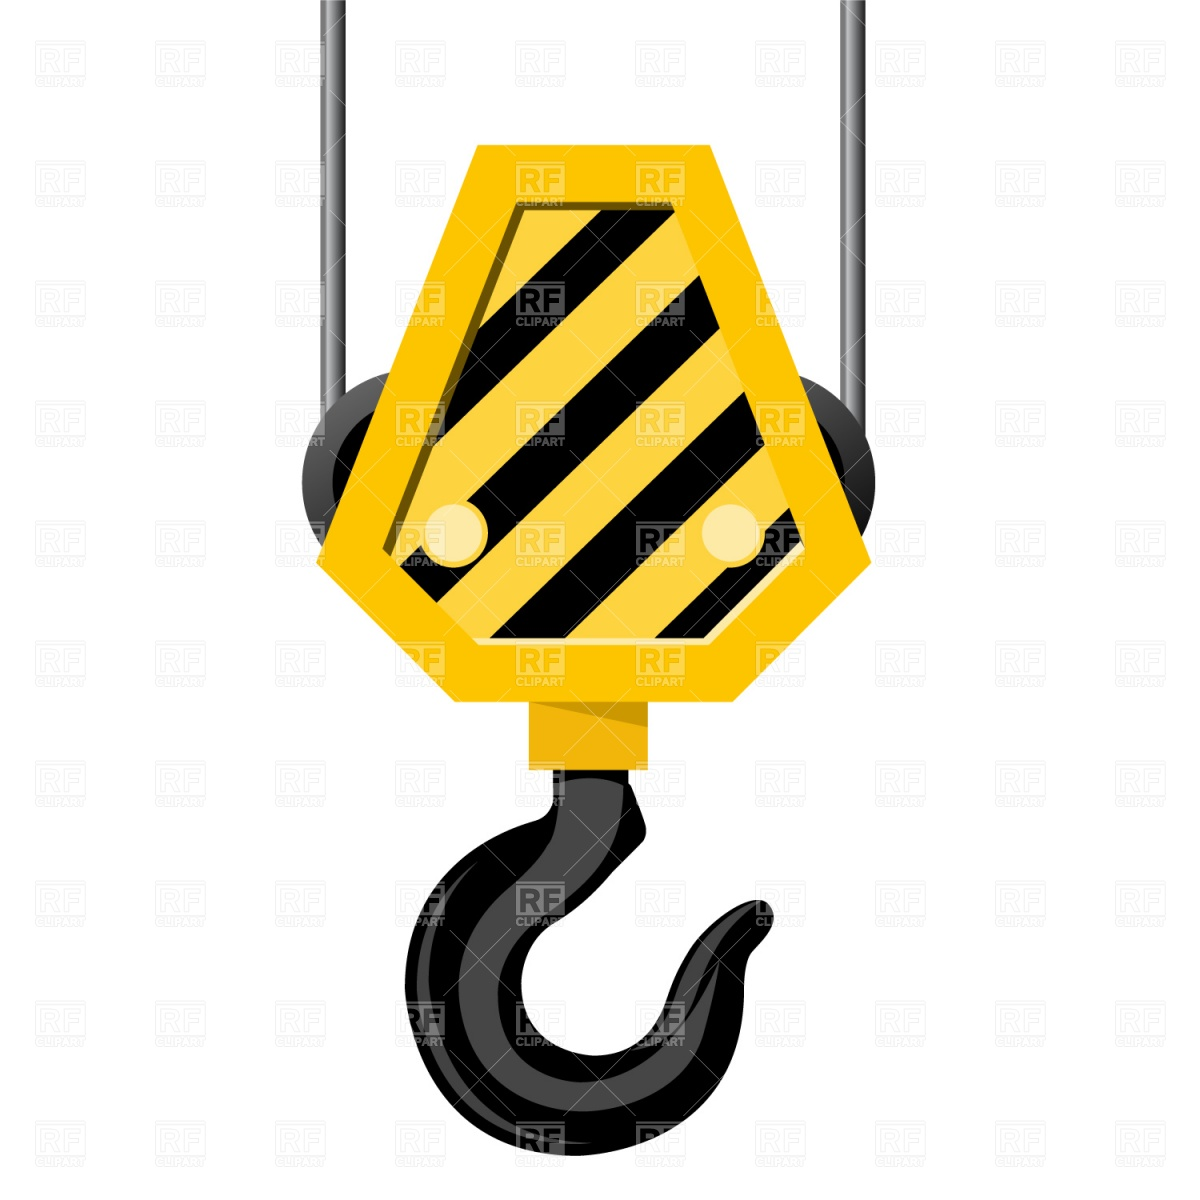 13 Crane Hook Icon Images